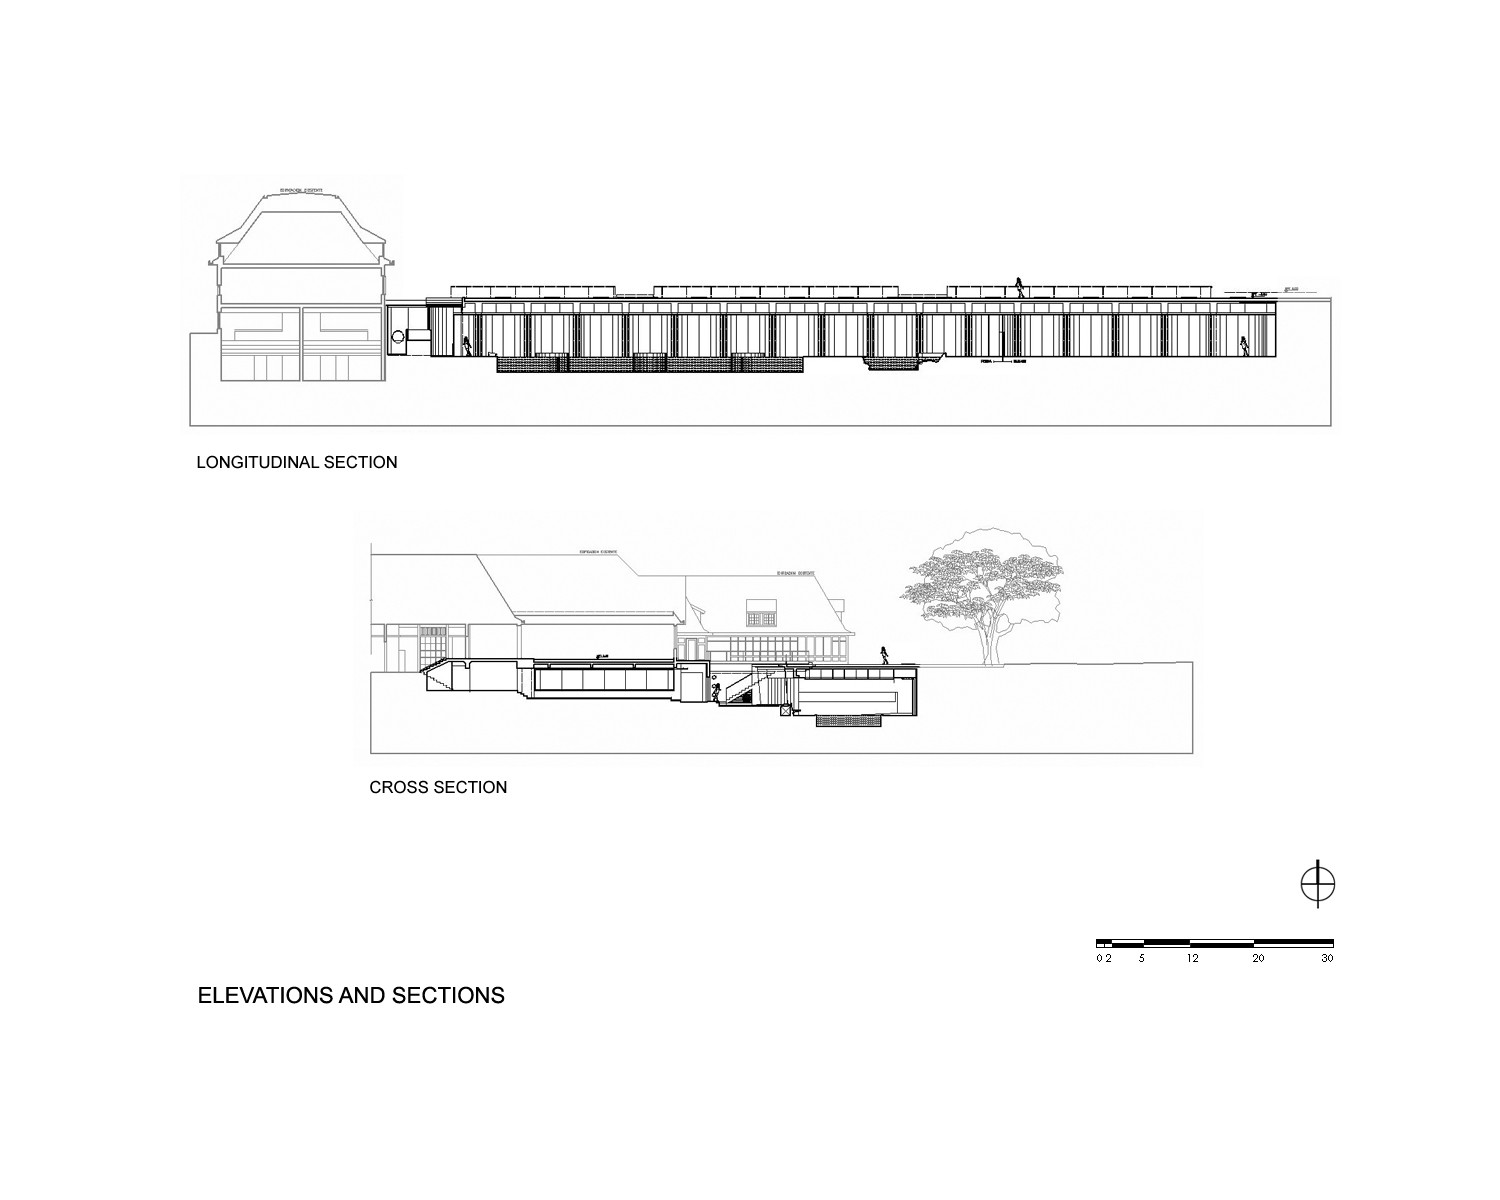 Ping Mall Plan Elevation Section : Gallery of p w c spa fitness center plan